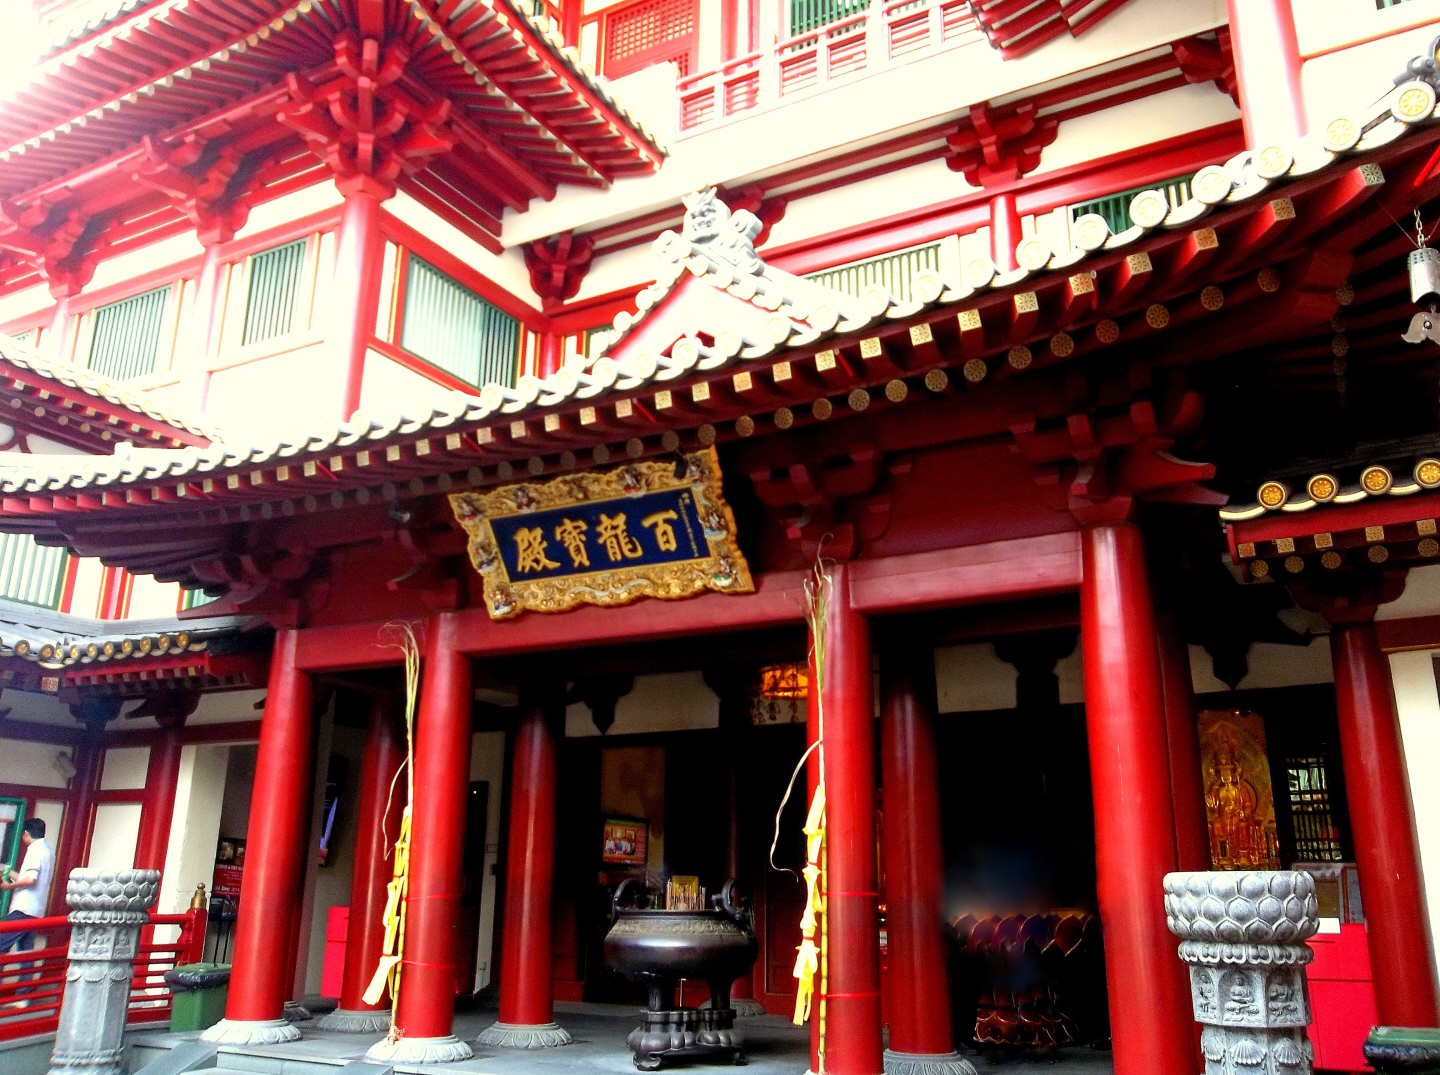 The Temple of the Tooth Chinese Buddhist Temple